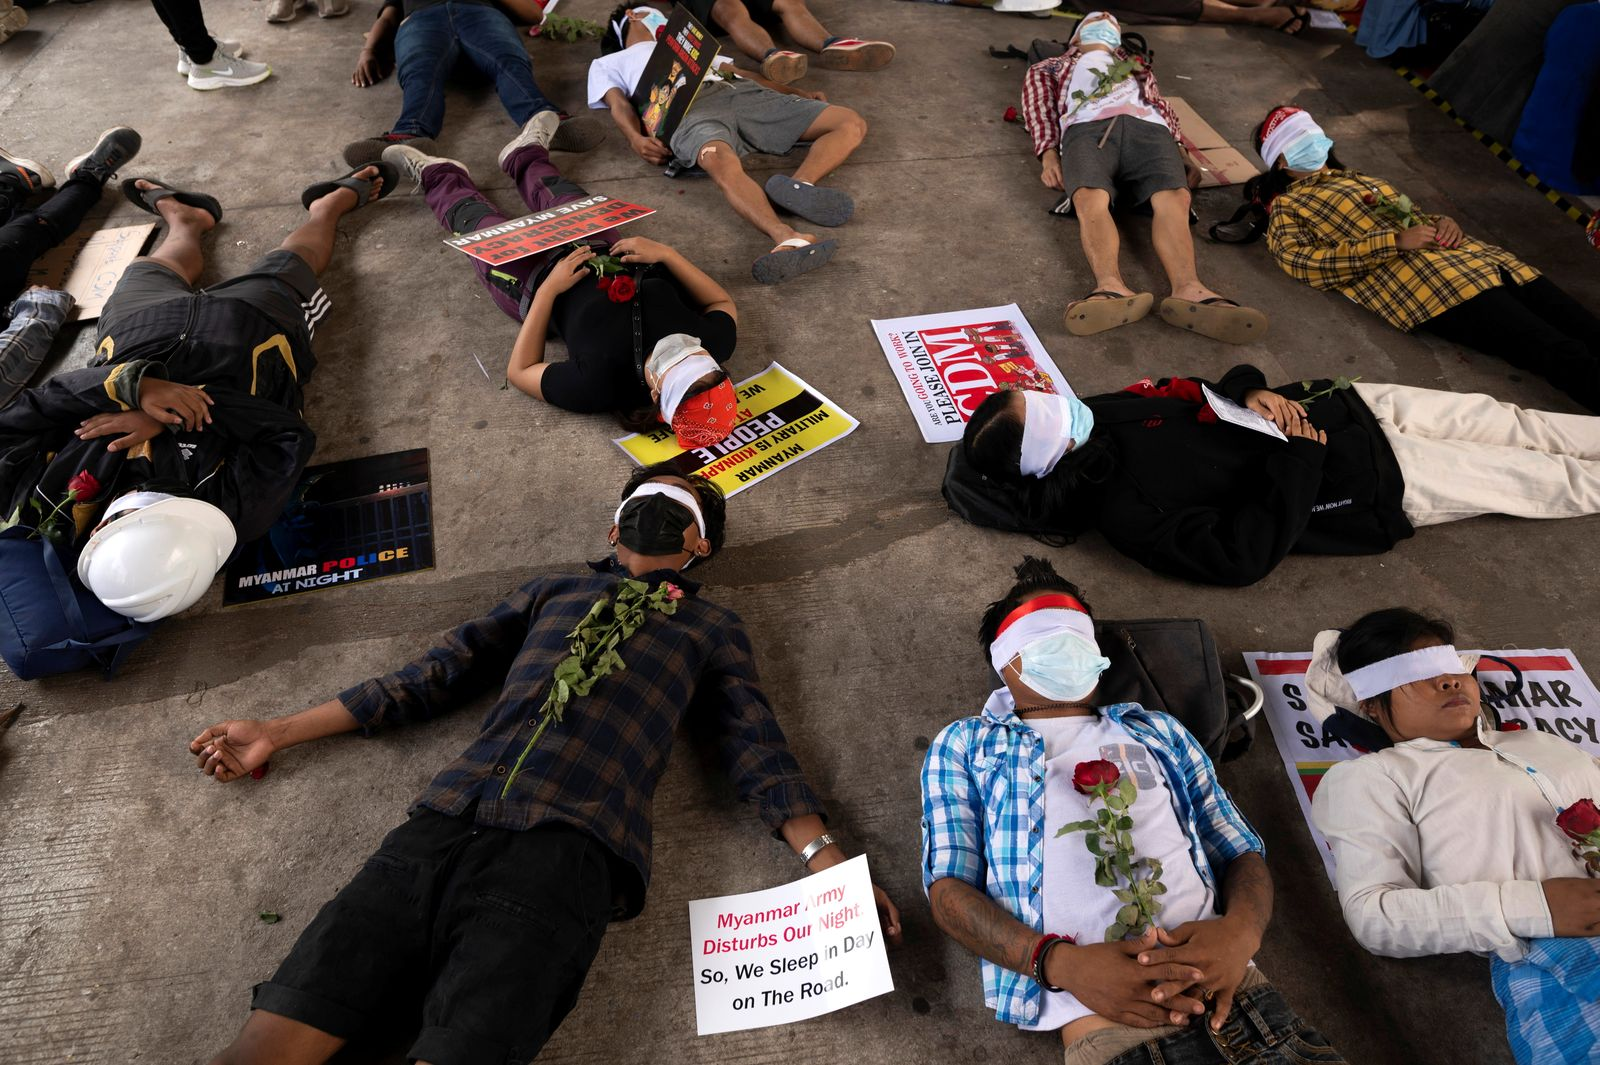 People lie down on the floor as they take part in a protest against the military coup in Yangon, Myanmar